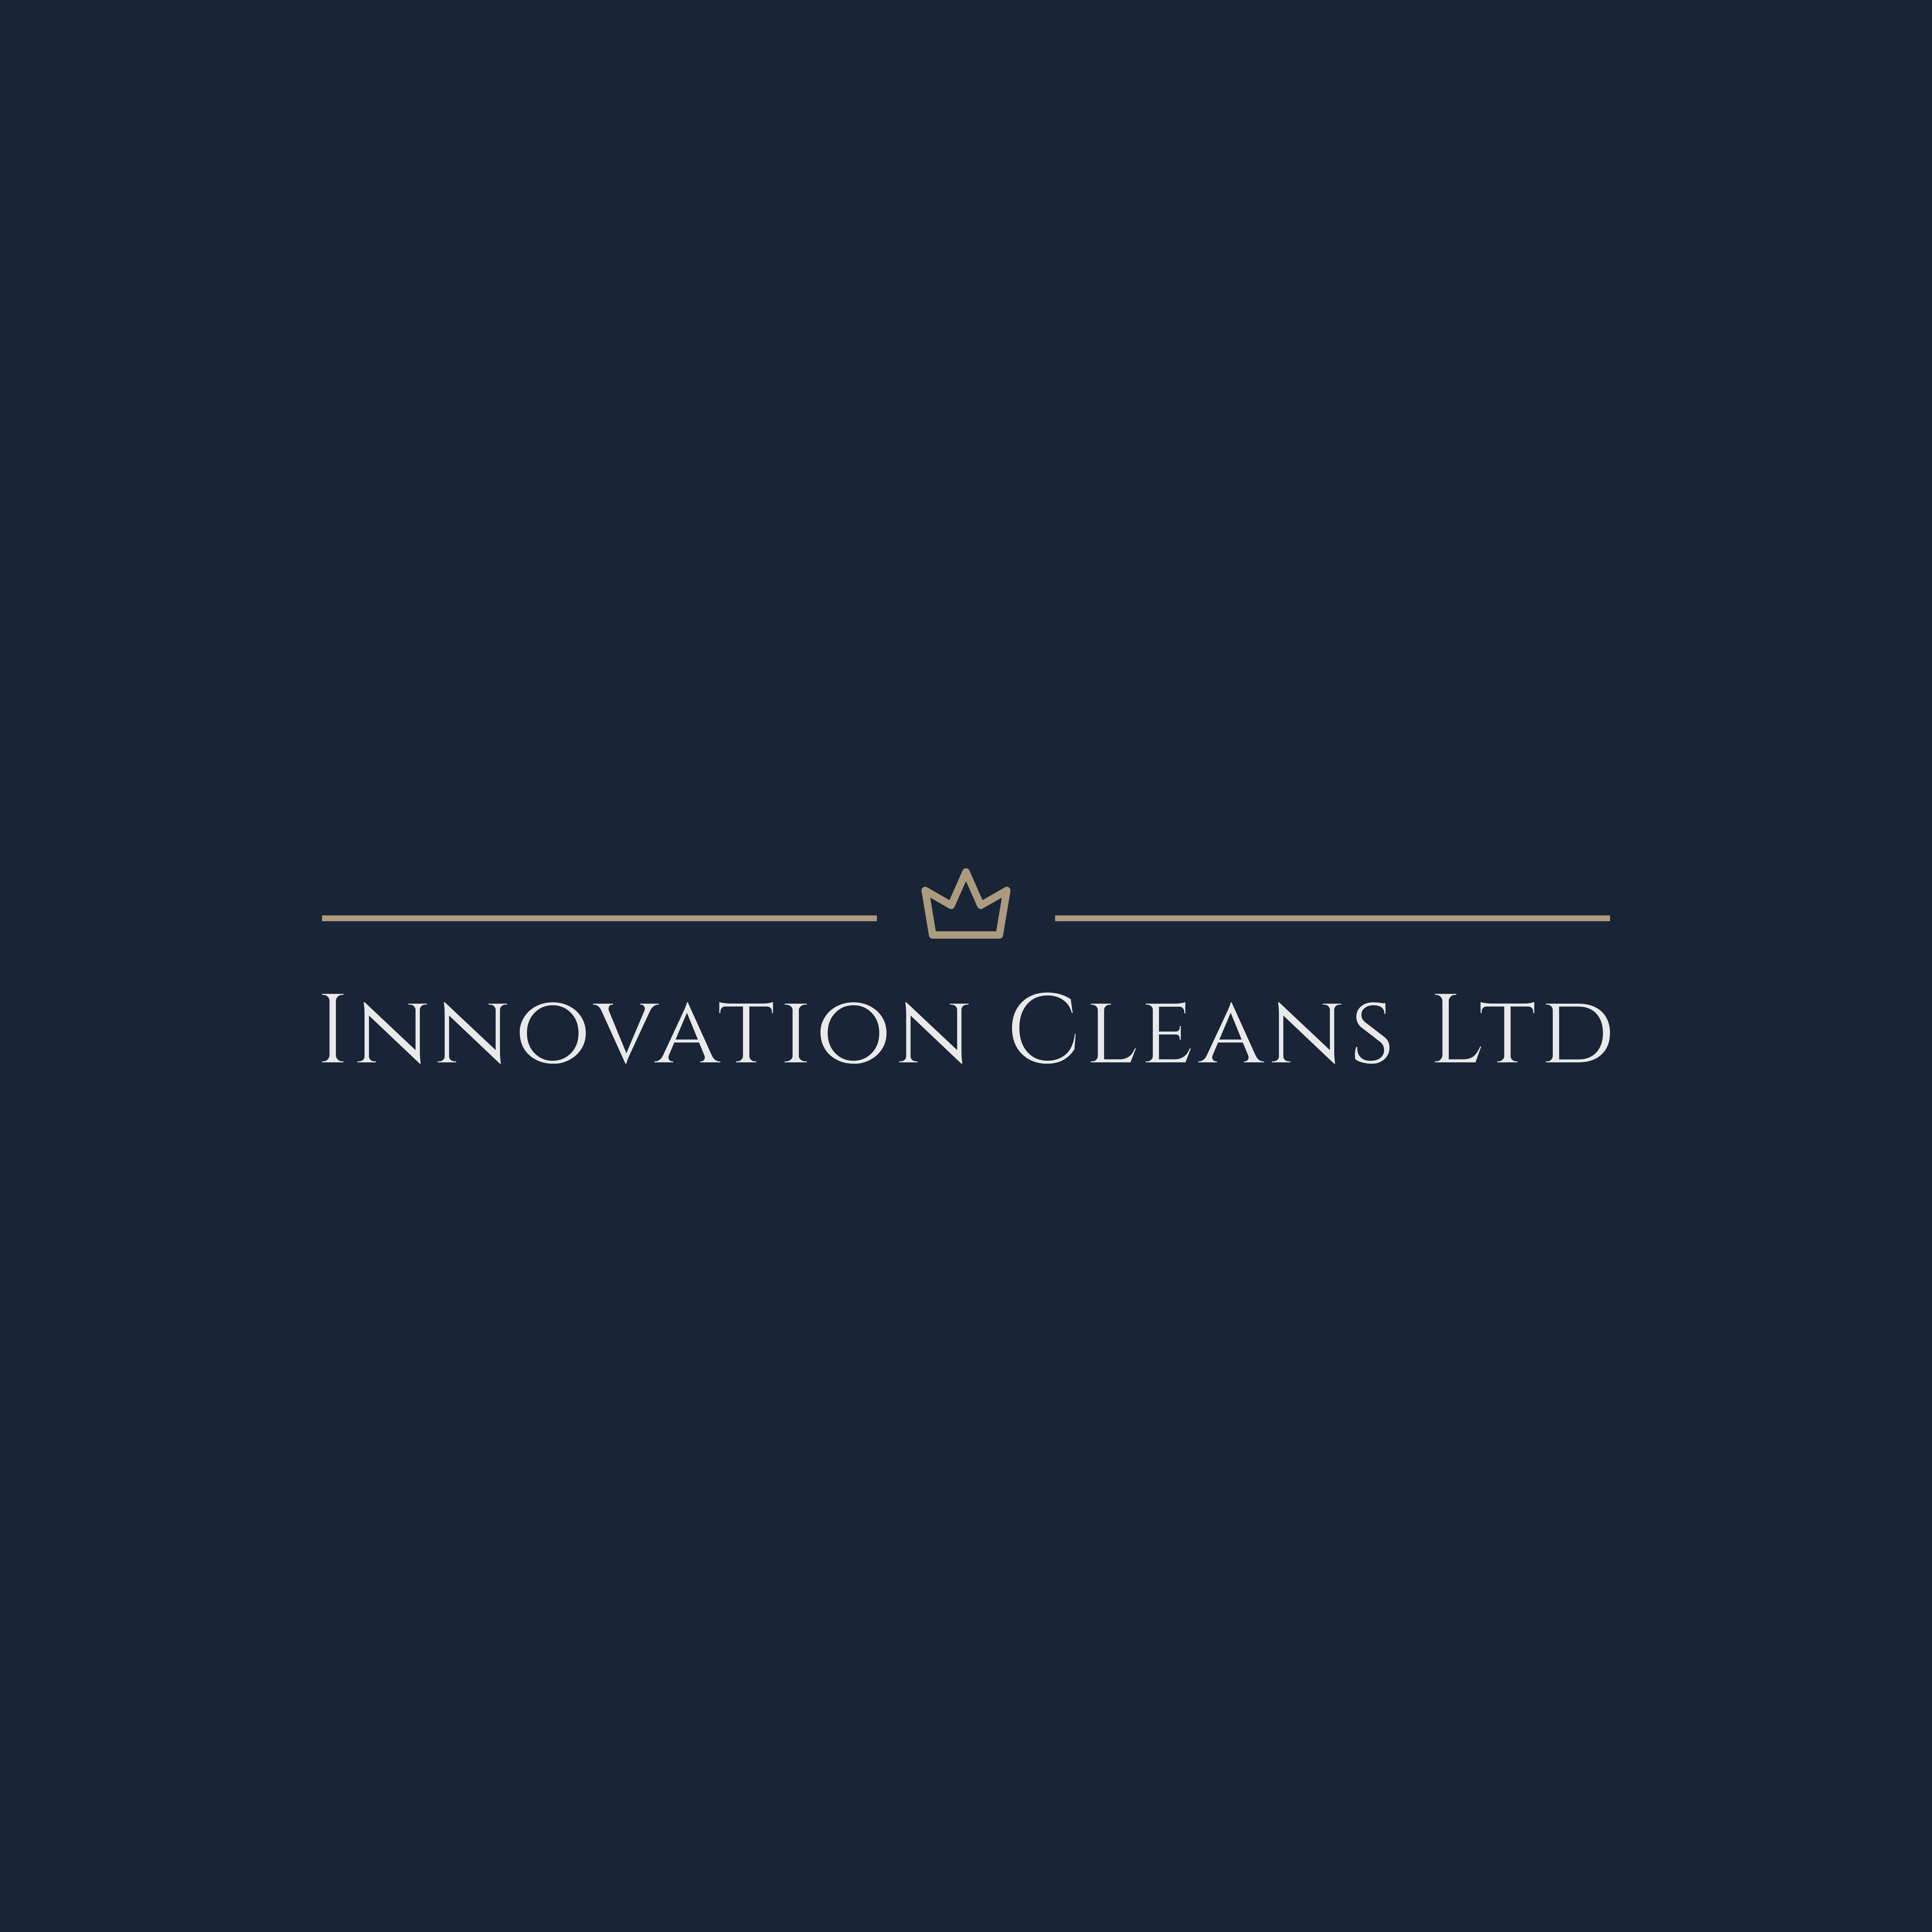 Innovation Cleans ltd